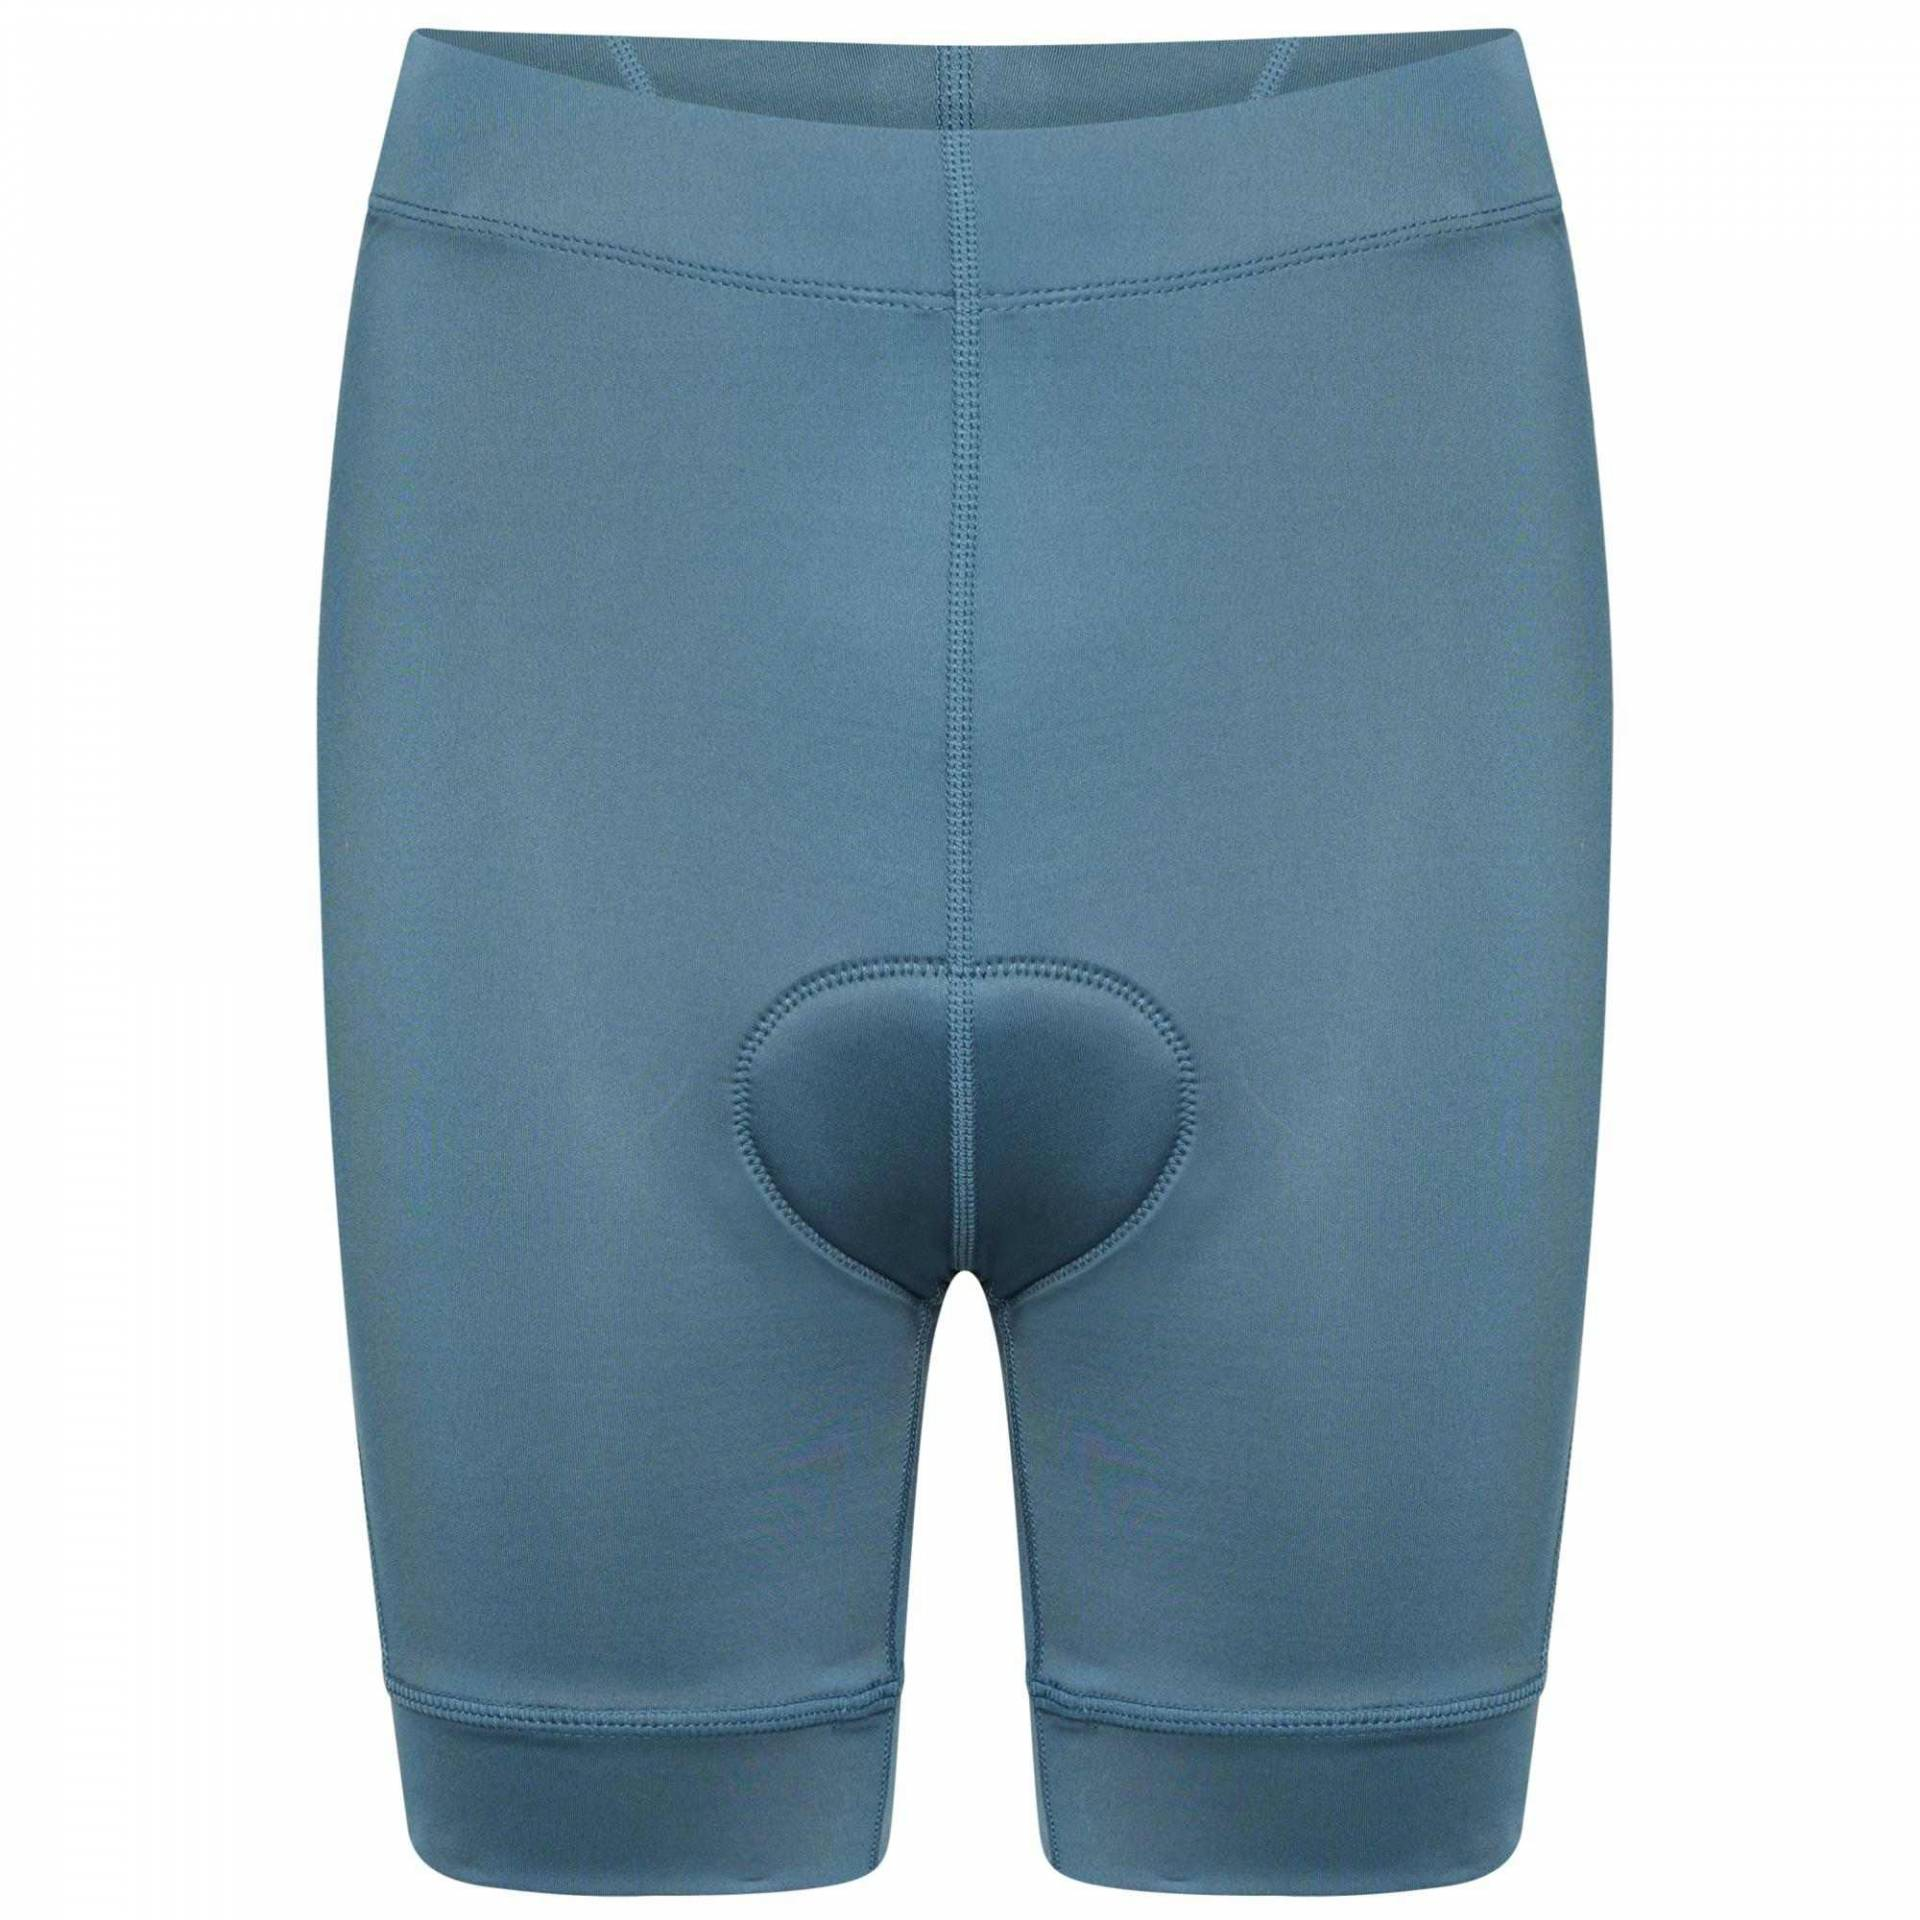 dare2b Habit Short Women petrol Damen Gr. 42 Damen von Dare2b